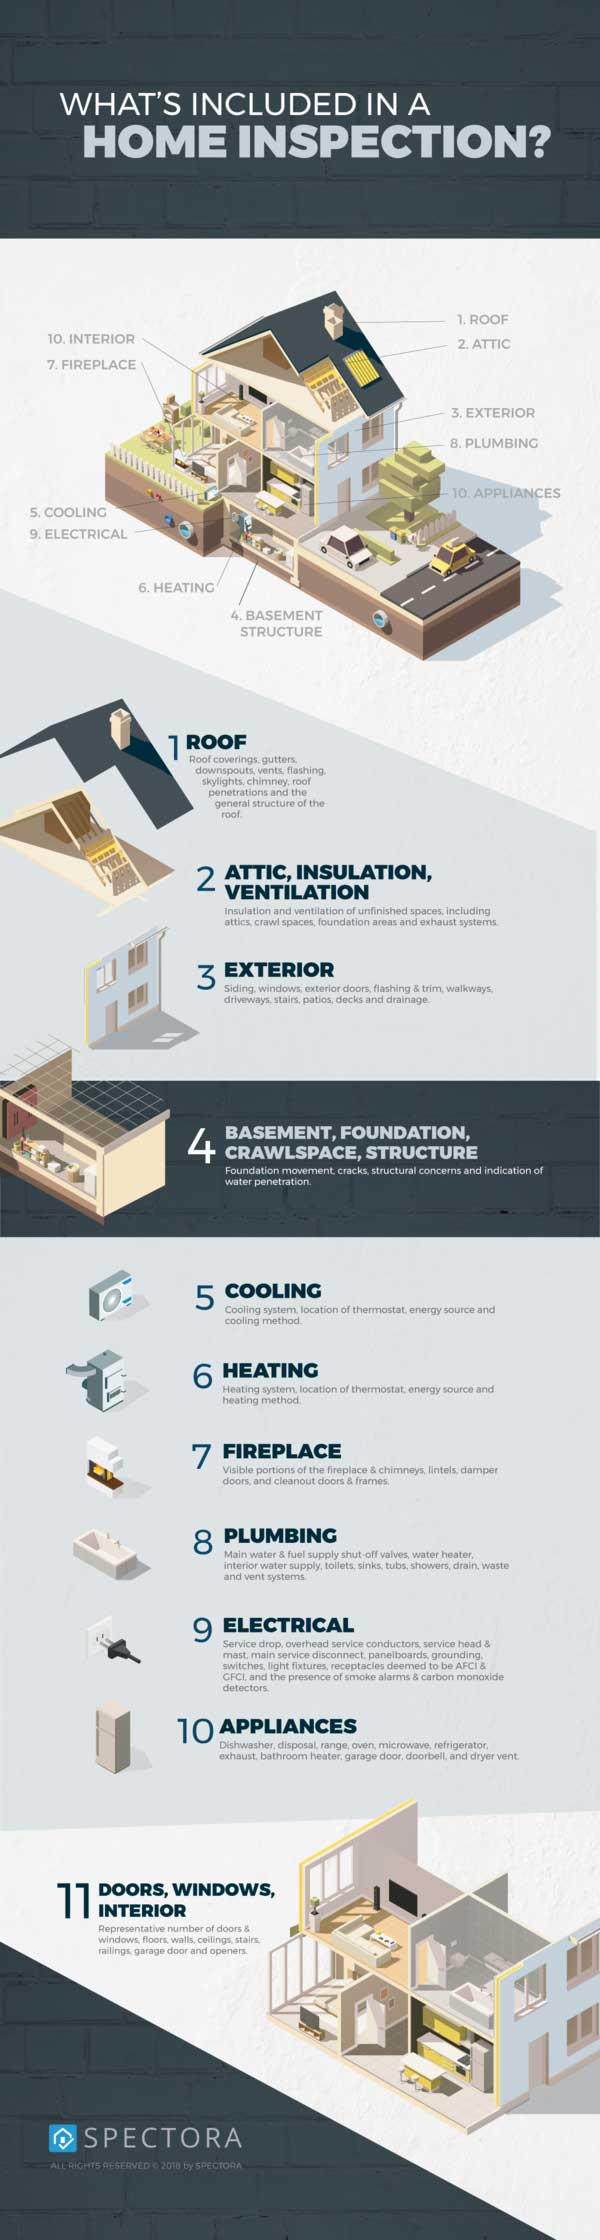 Spectora Infographic What to Expect from Your Inspection